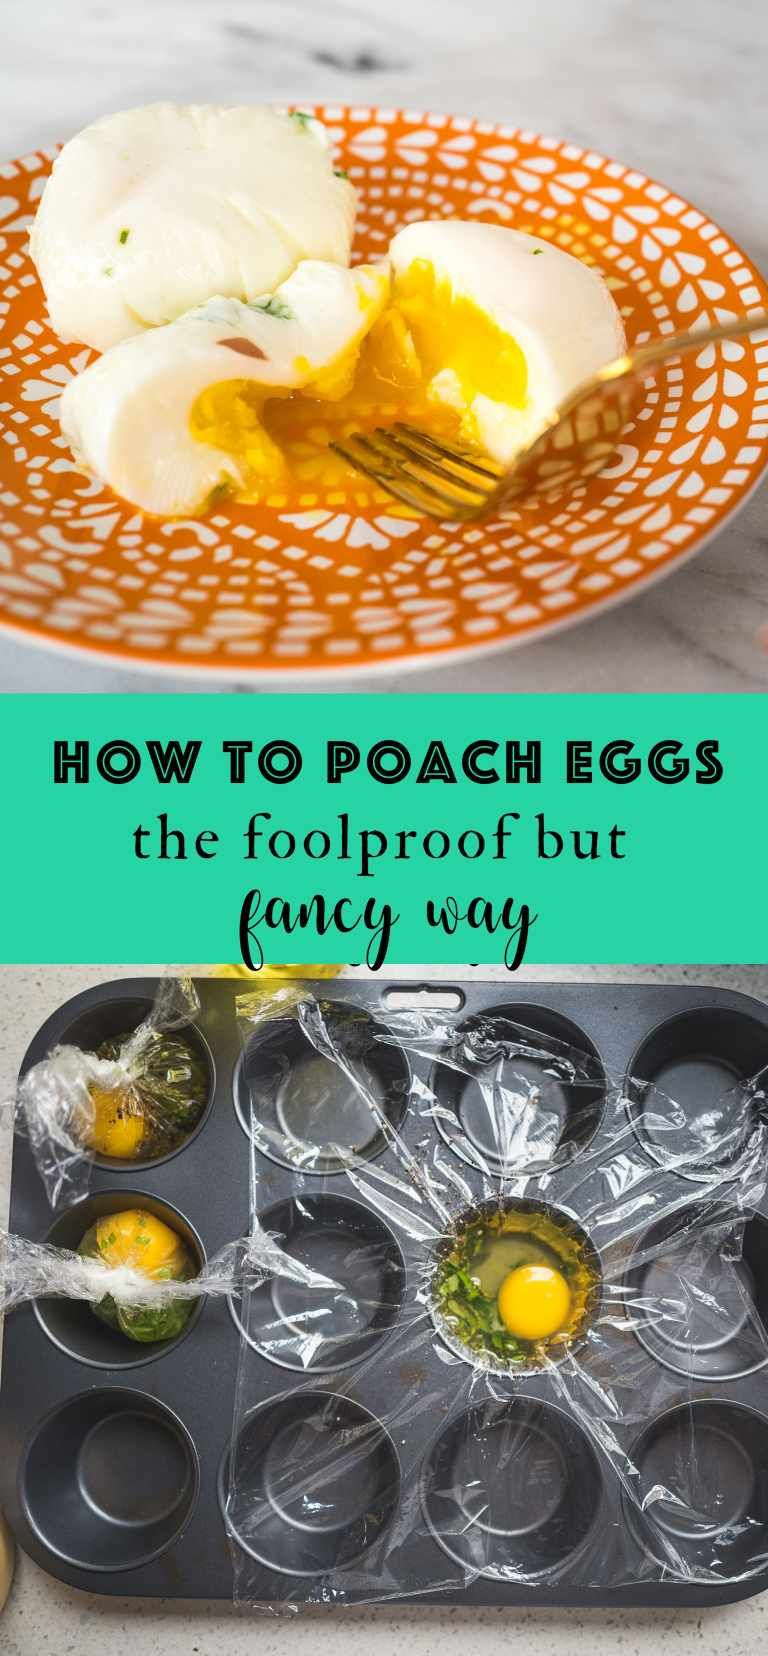 How to poach eggs (the foolproof but fancy way) | Recipe | Katie in ...